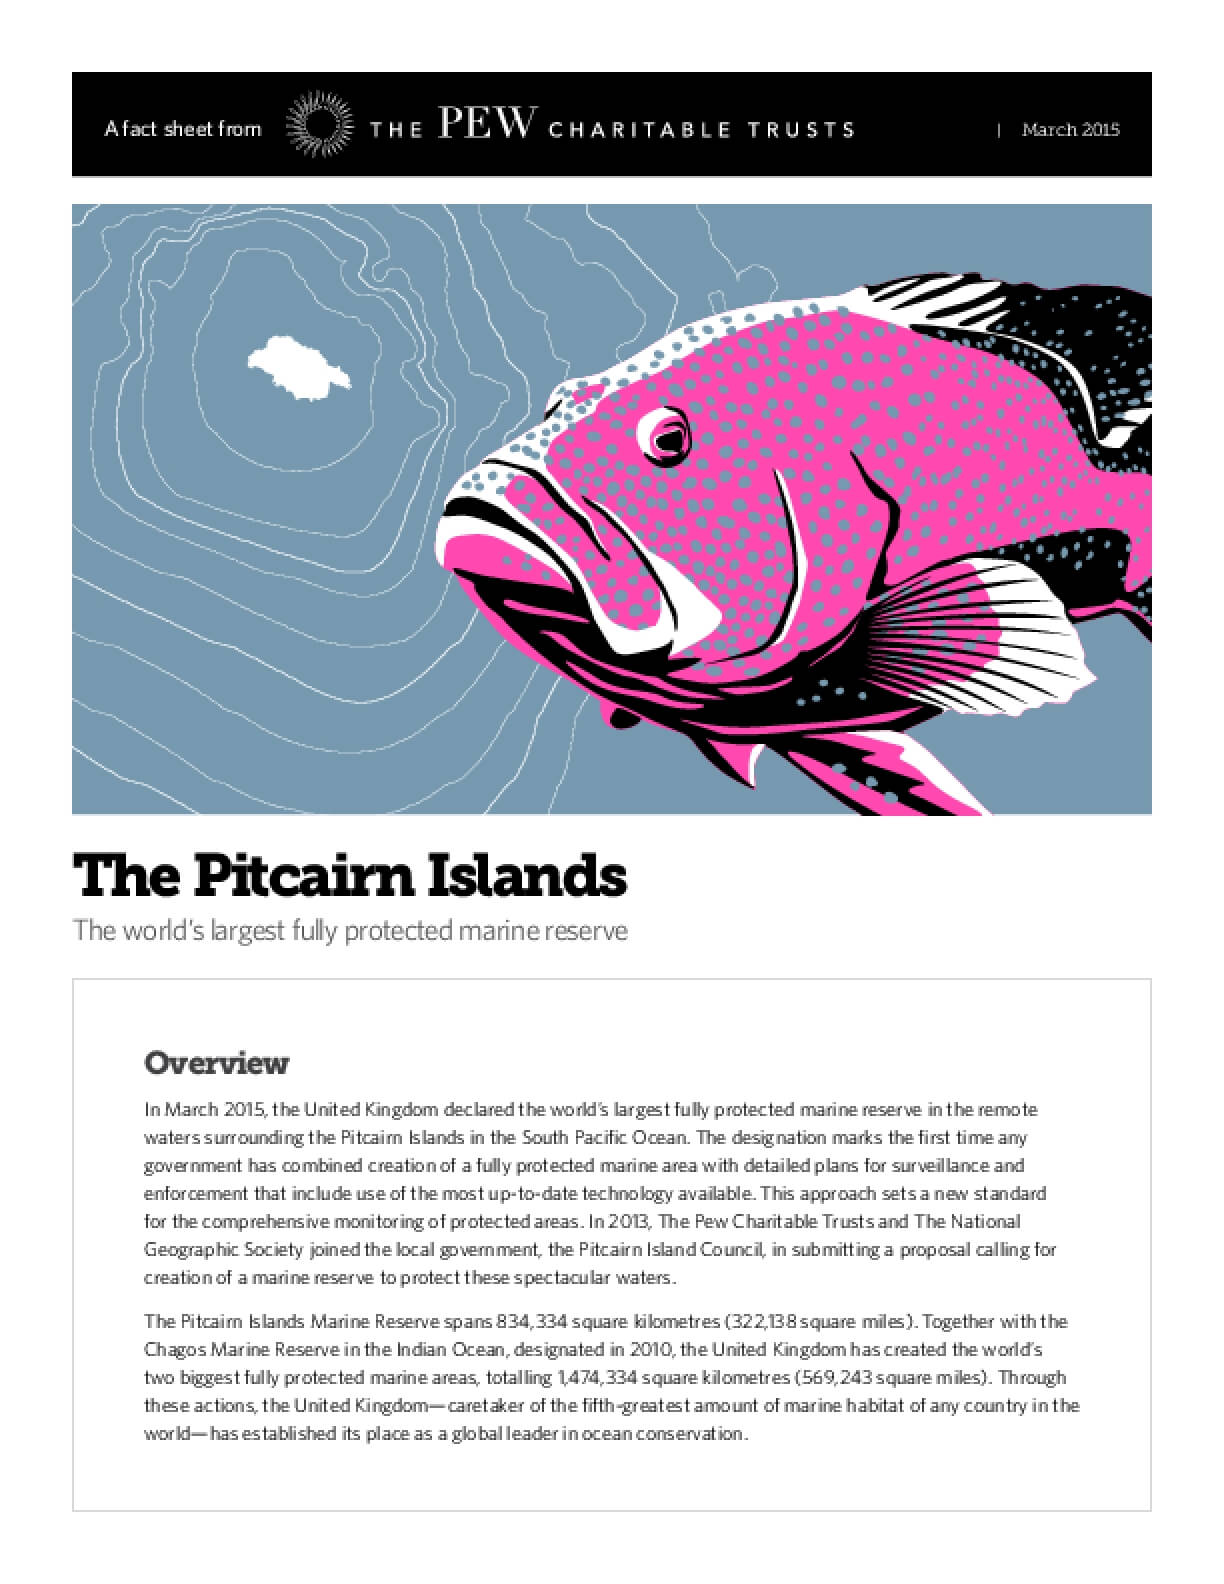 The Pitcairn Islands The world's Largest Fully Protected Marine Reserve